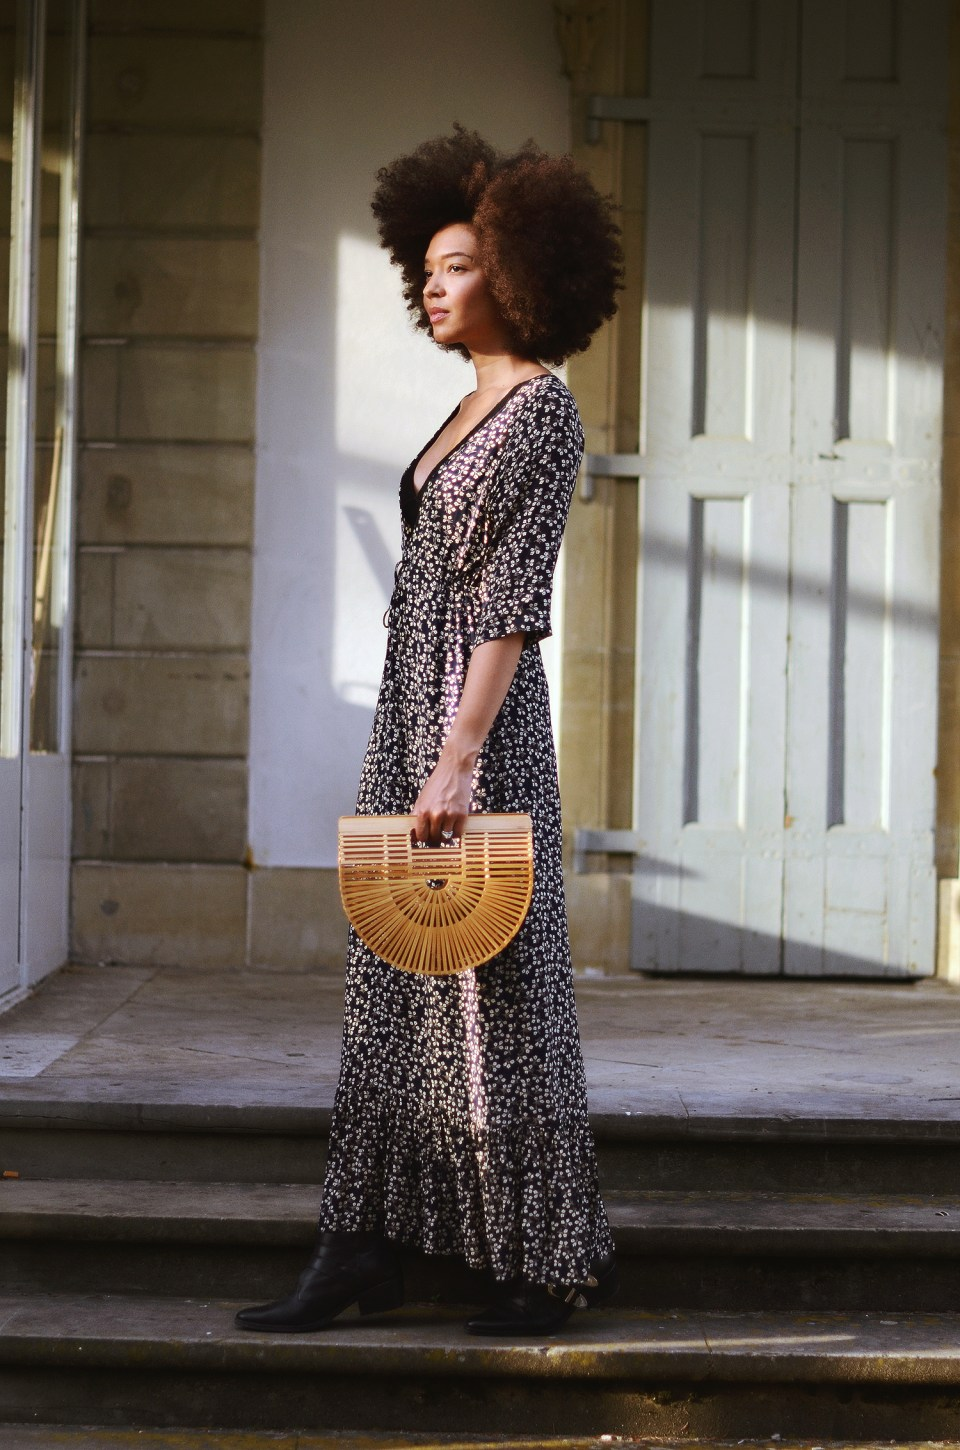 mercredie-blog-mode-geneve-blogueuse-bloggeuse-suisse-swiss-switzerland-robe-ganni-dress-cult-gaia-bag-small-toga-pulla-boots-buckled-afro-hair-nappy-curly-curls-big-fro-cheveux-frises4-1